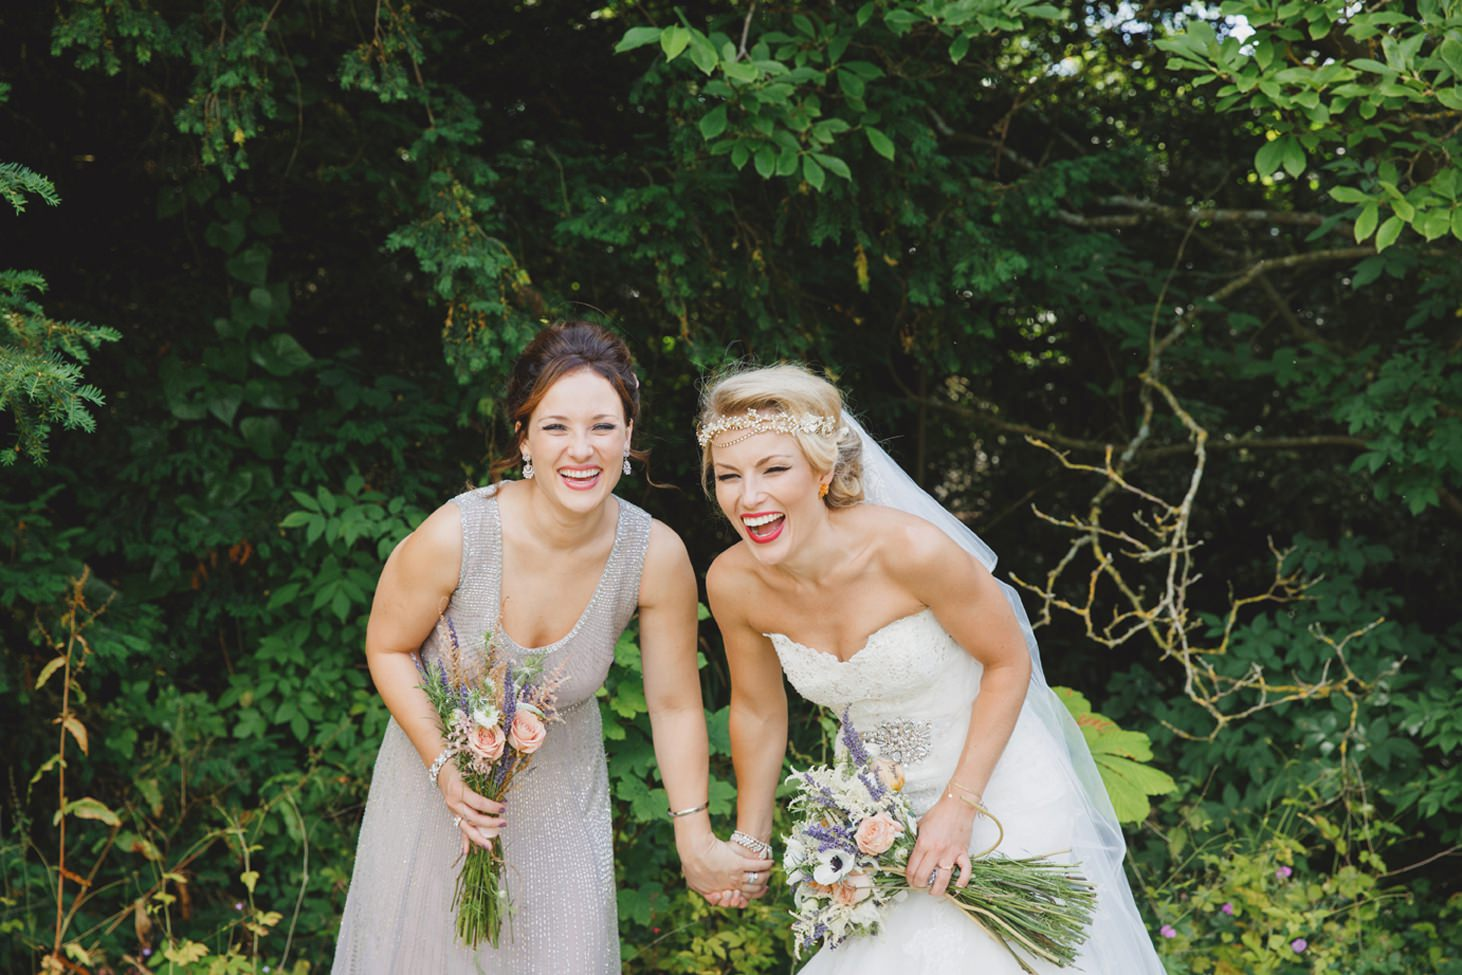 The Rectory Hotel Crudwell bride and bridesmaid laughing